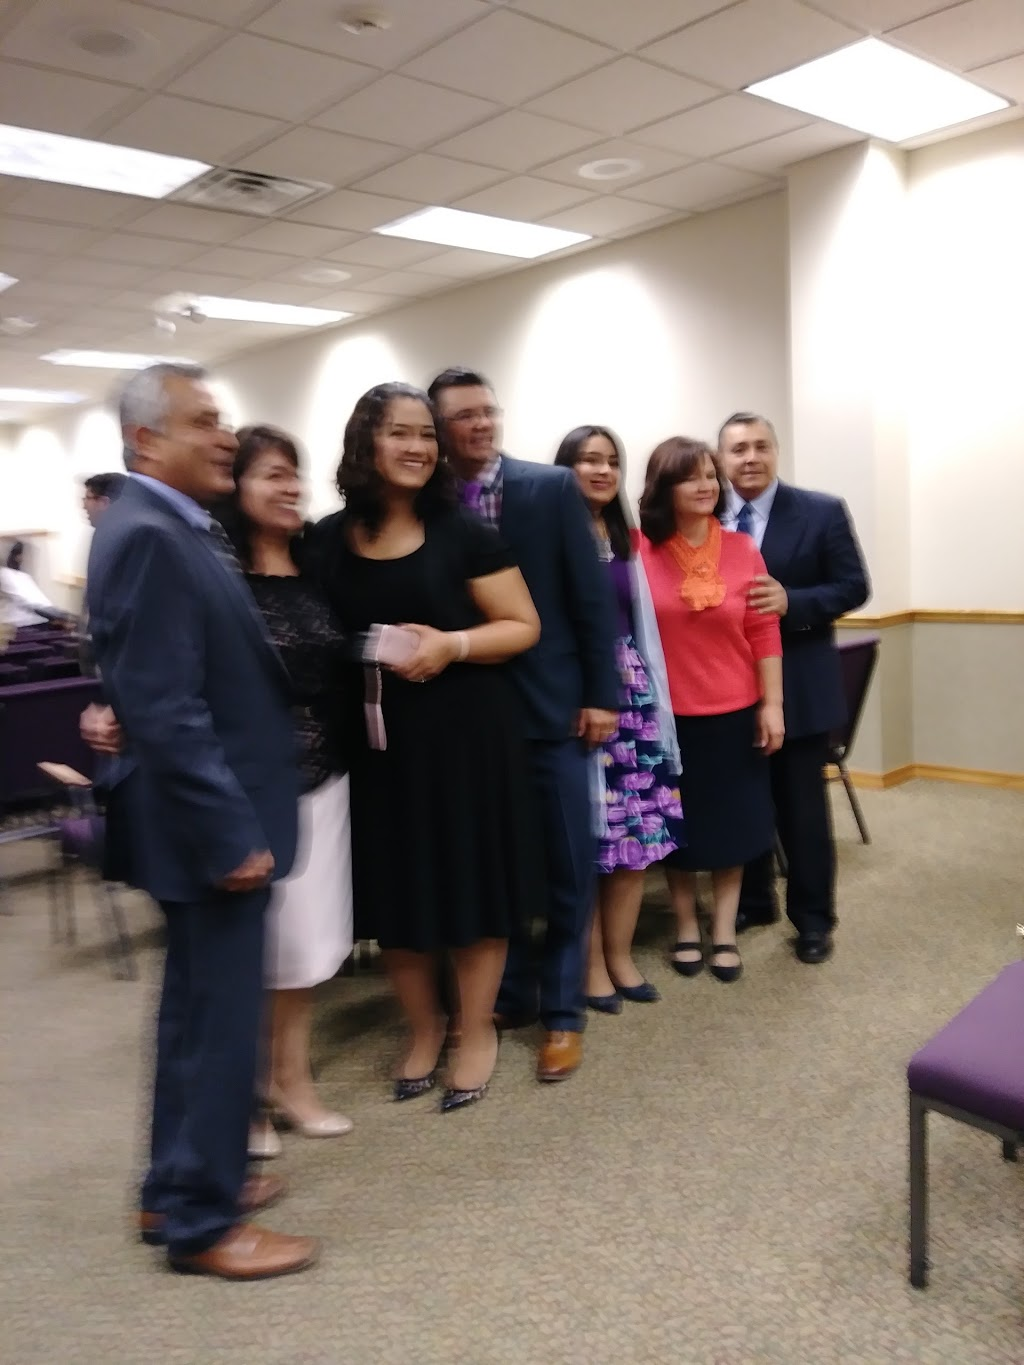 Kingdom Hall of Jehovahs Witnesses - church  | Photo 4 of 5 | Address: 4225 Roosevelt Rd, Chicago, IL 60624, USA | Phone: (773) 277-3572